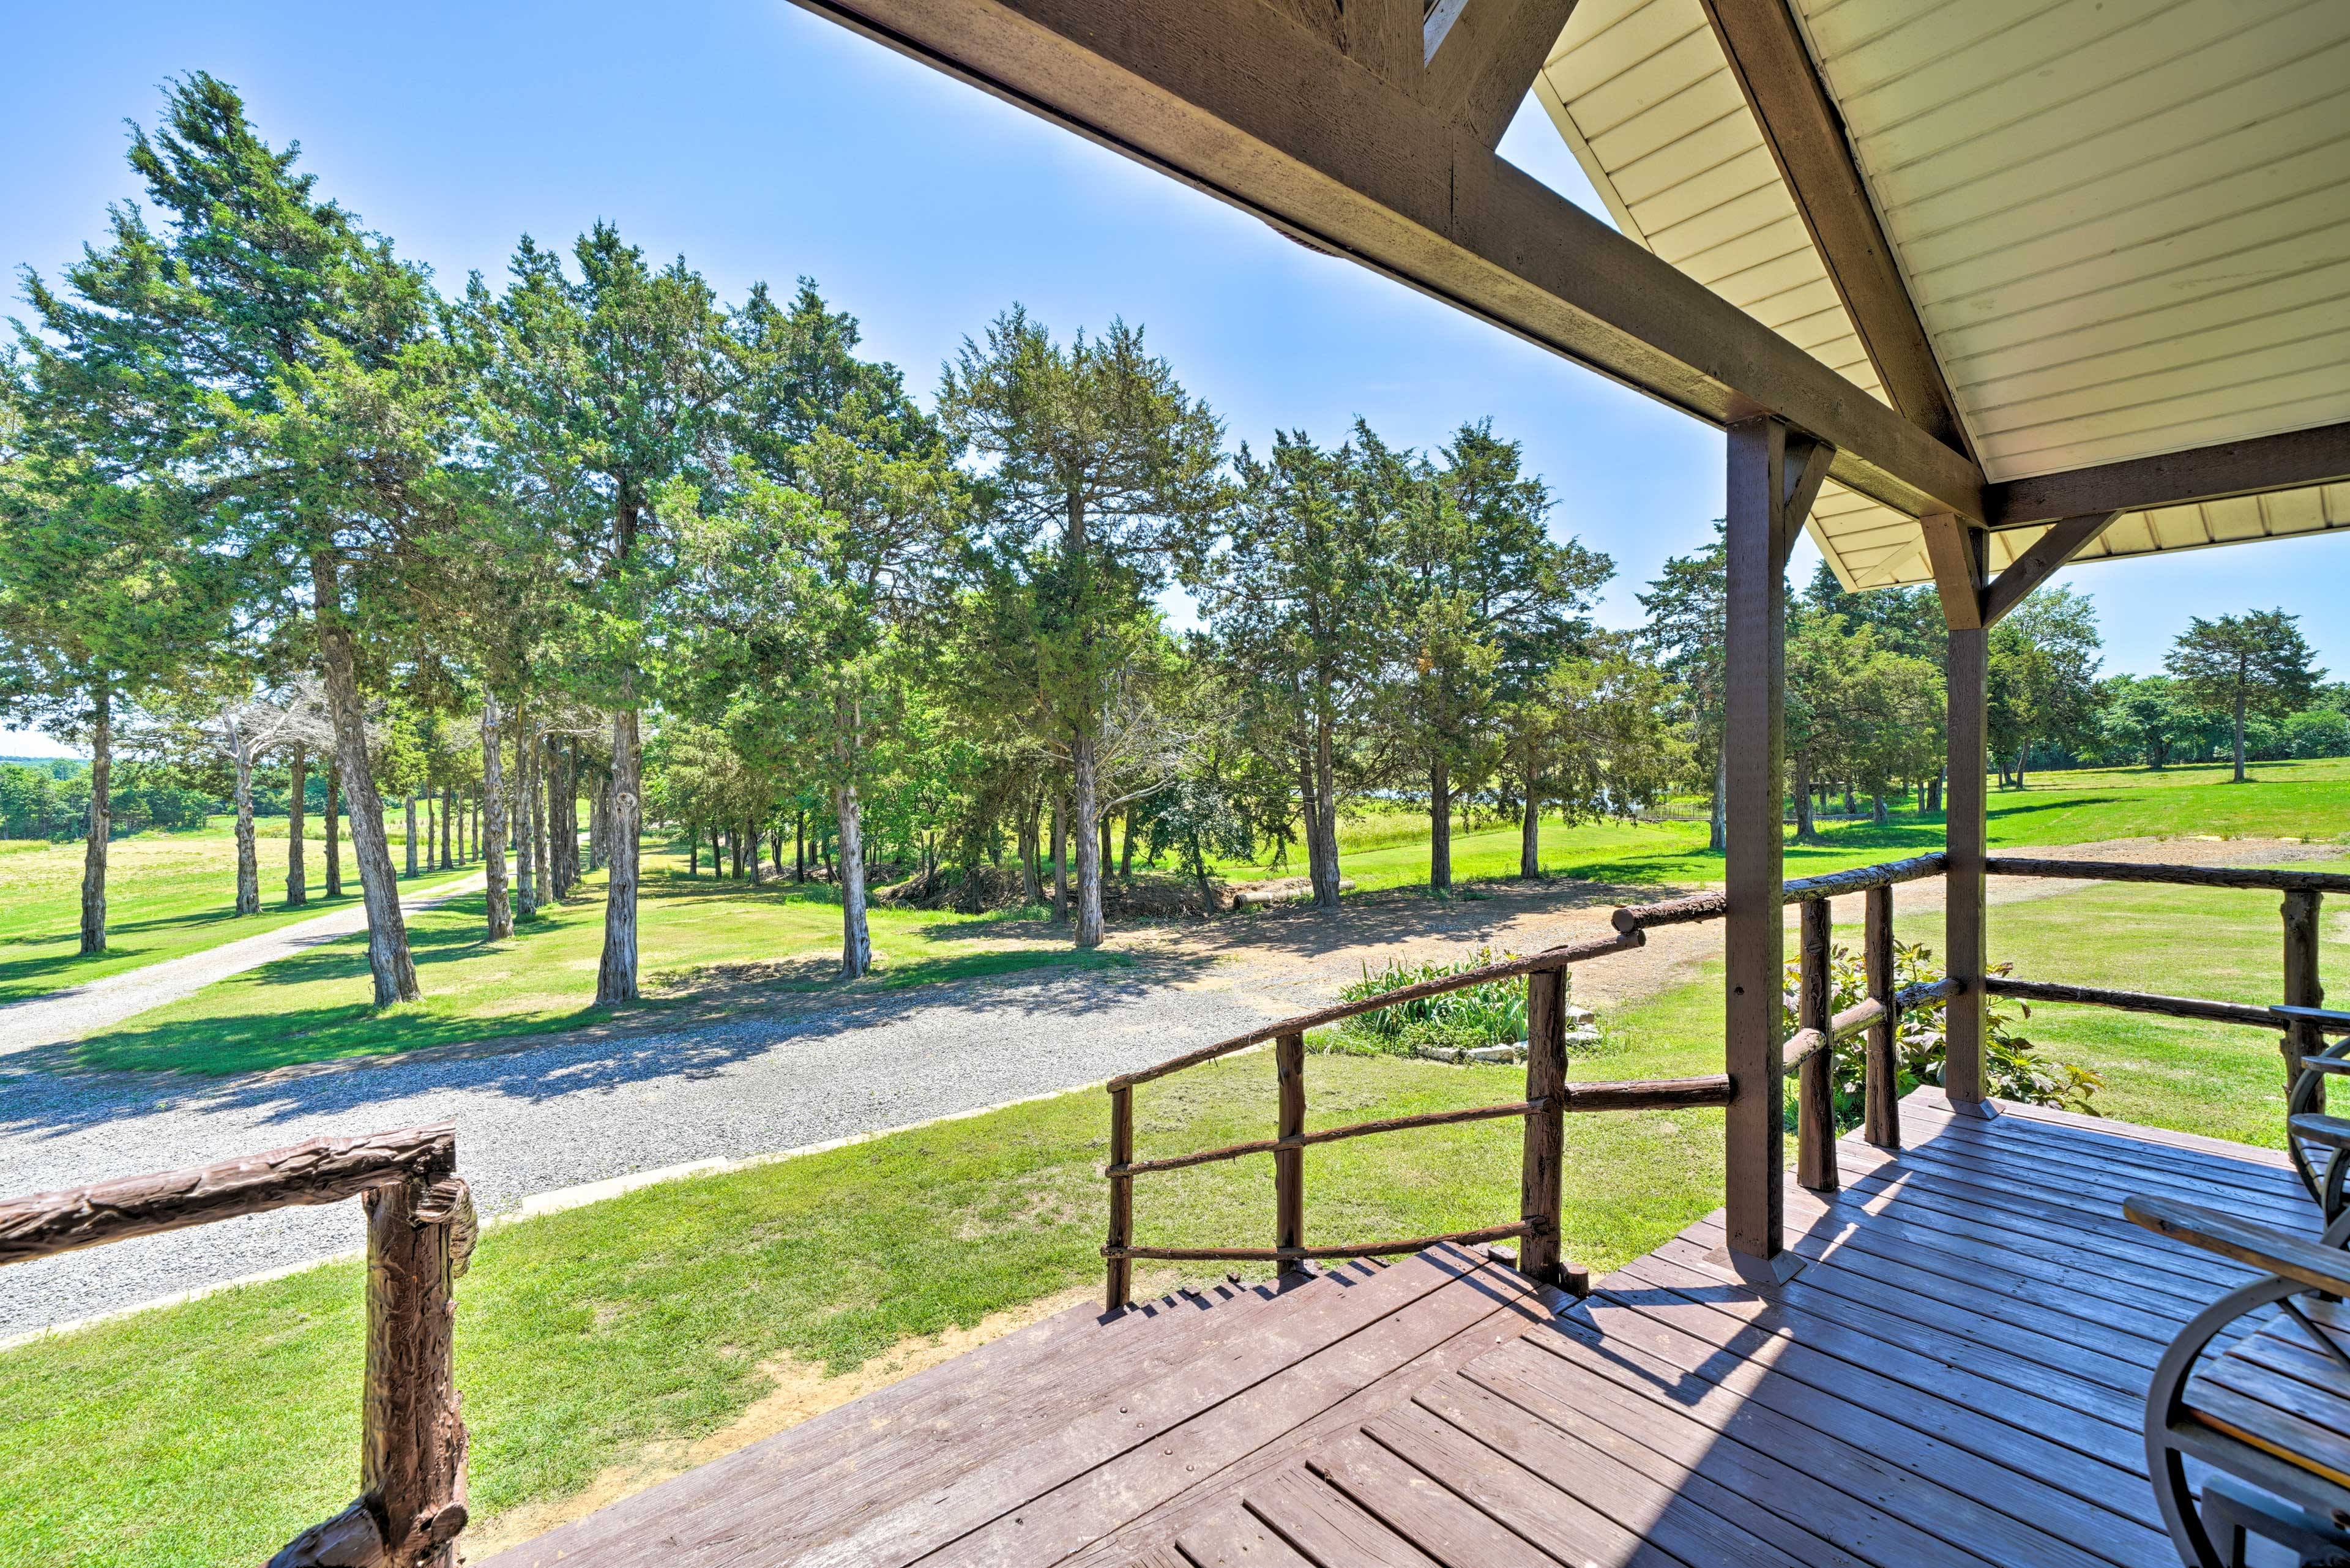 Take it easy in a rocking chair on the shaded front porch overlooking the ponds.